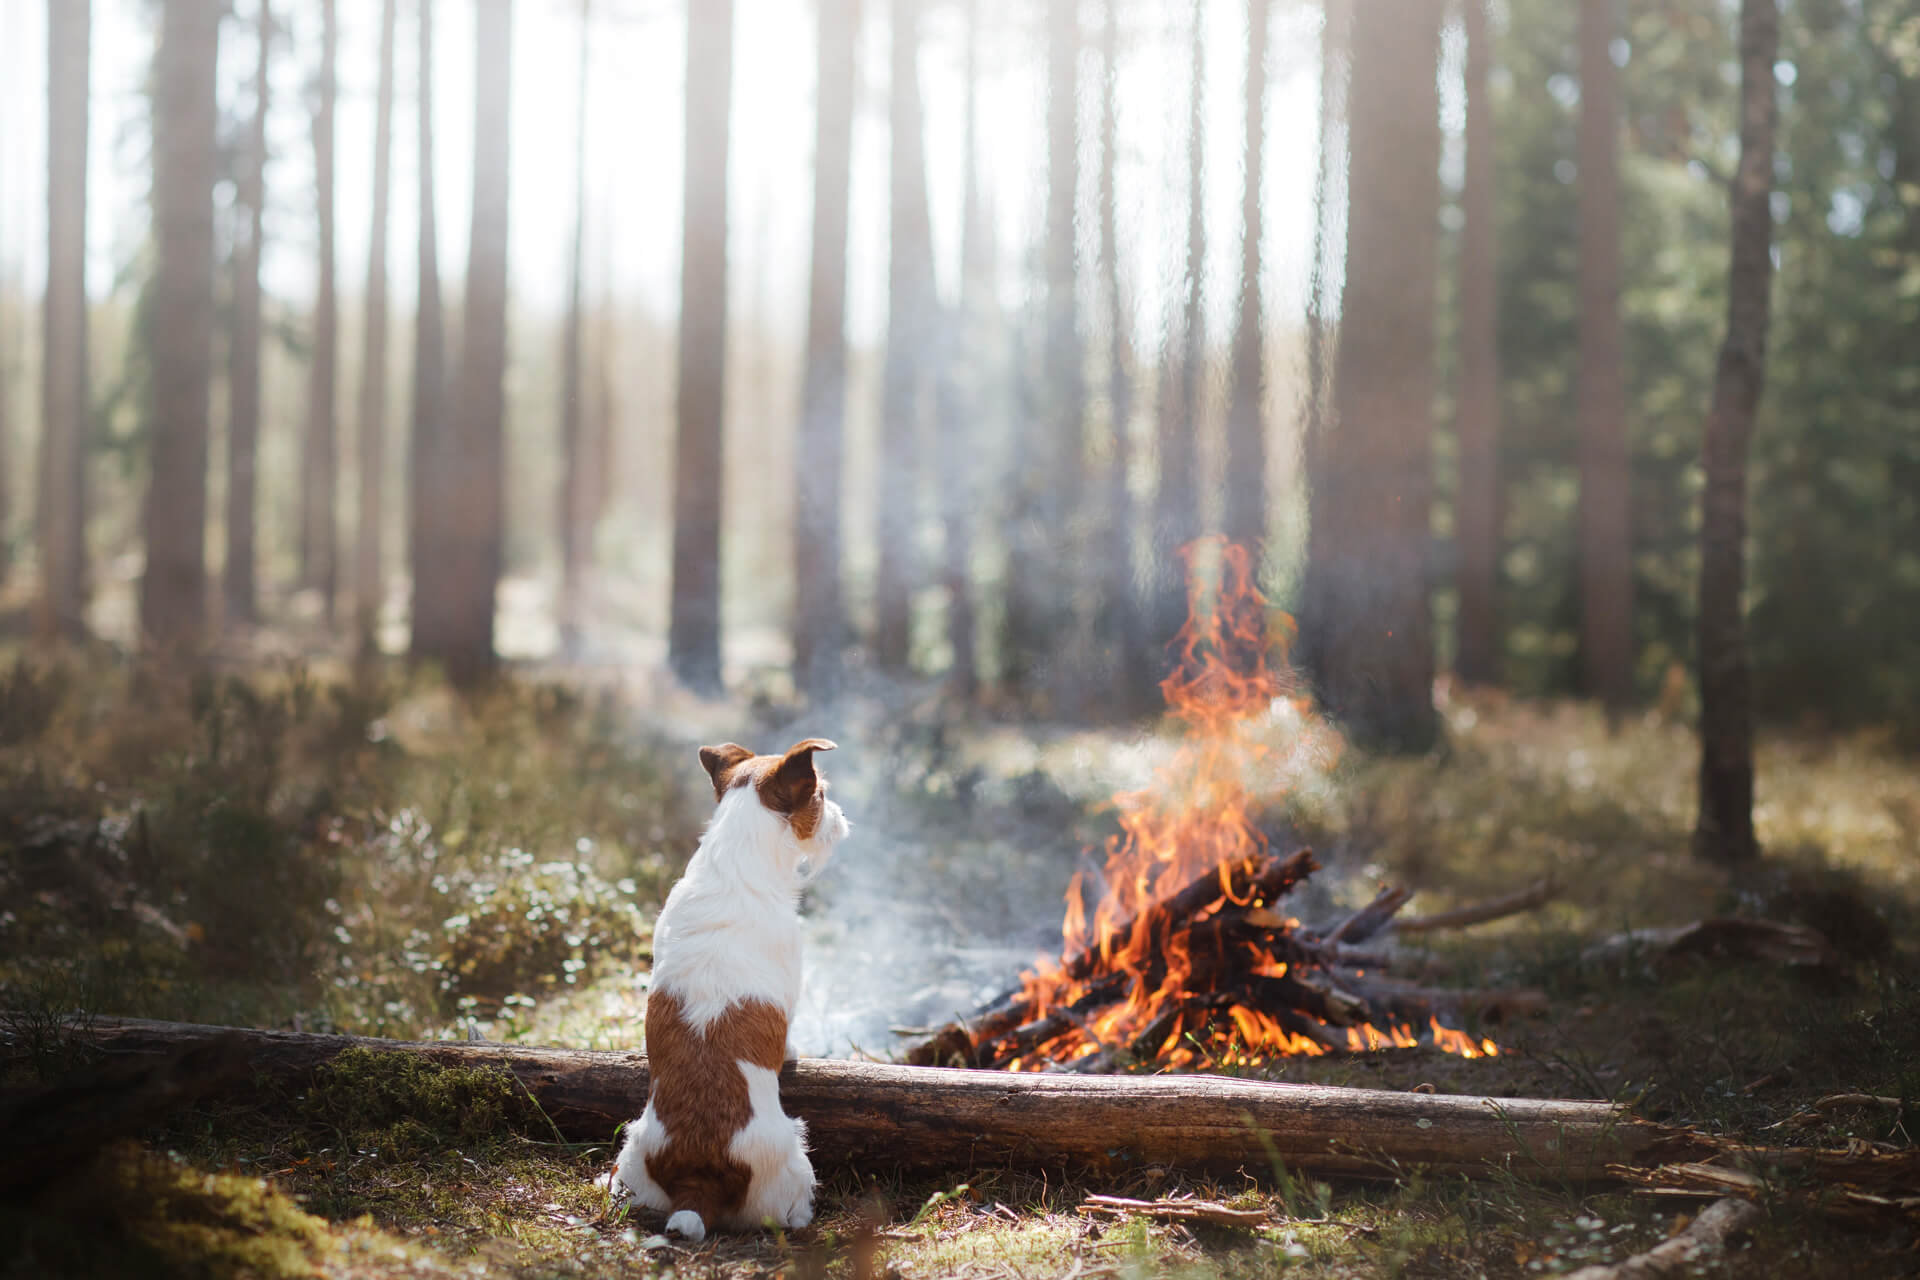 Bonfire night: 7 tips to keep your dog safe and calm